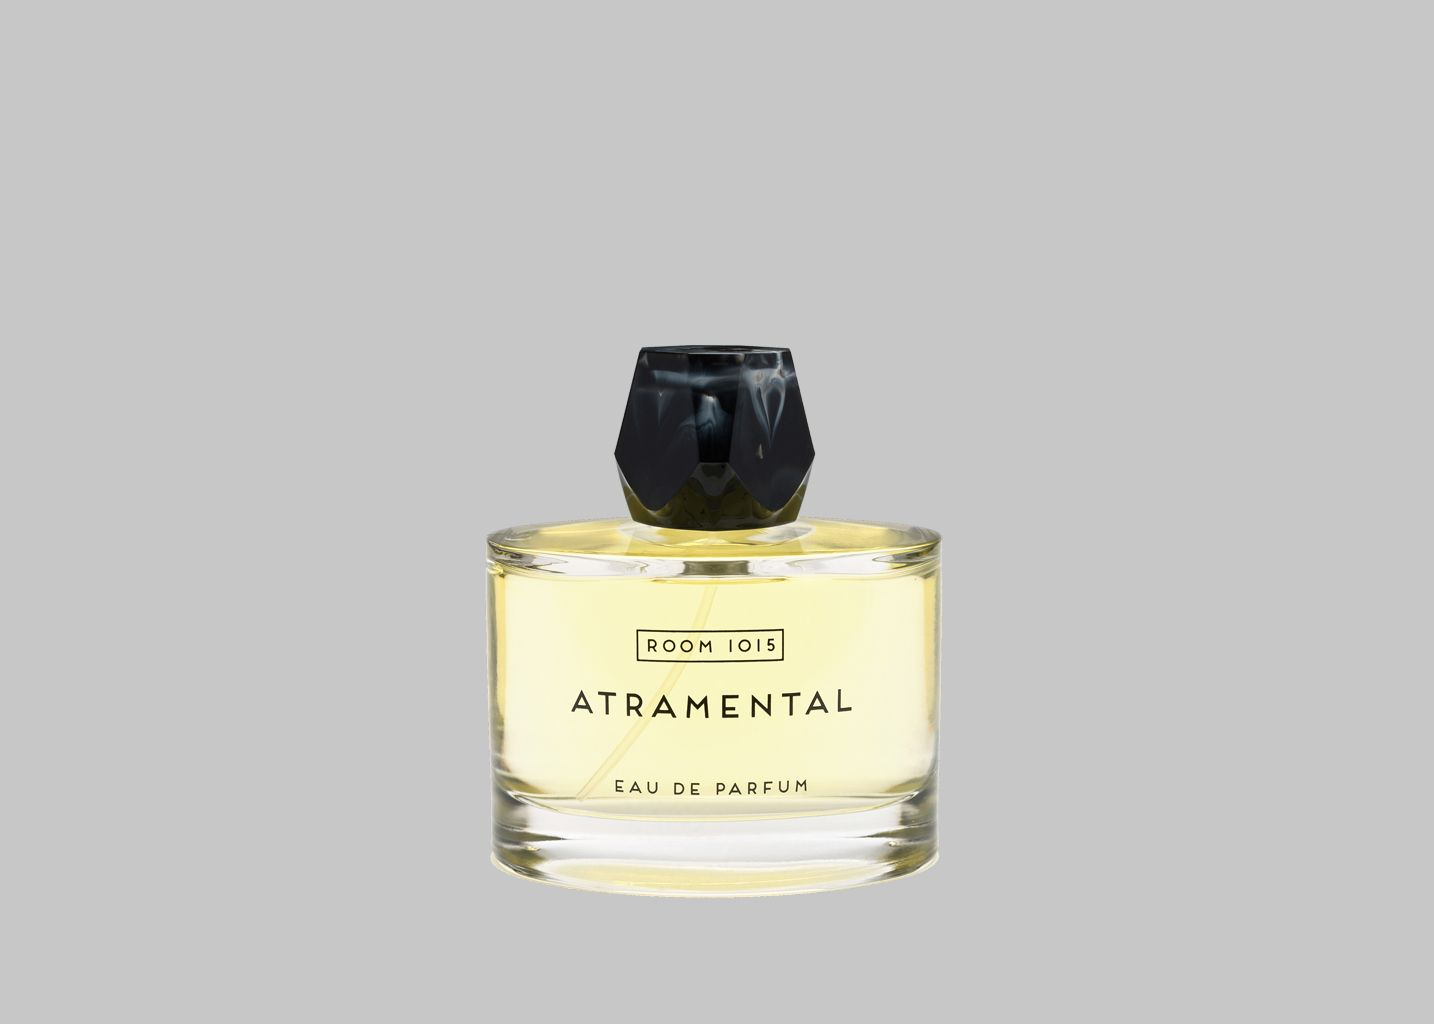 Parfum Atramental - Room 1015